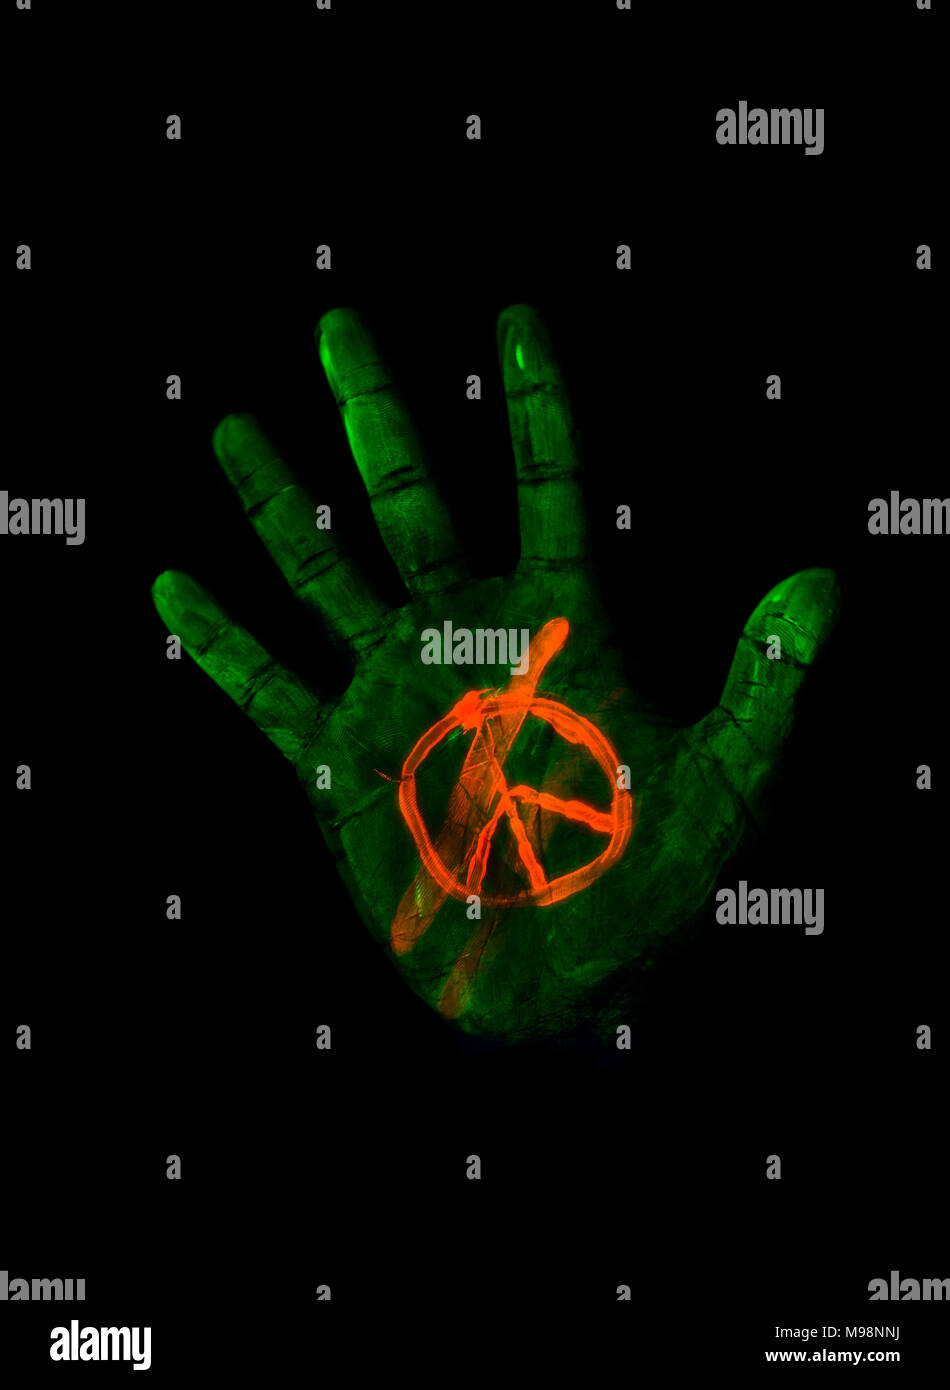 The Hand Was Painted With Glowing Colors And A Peace Symbol Stock